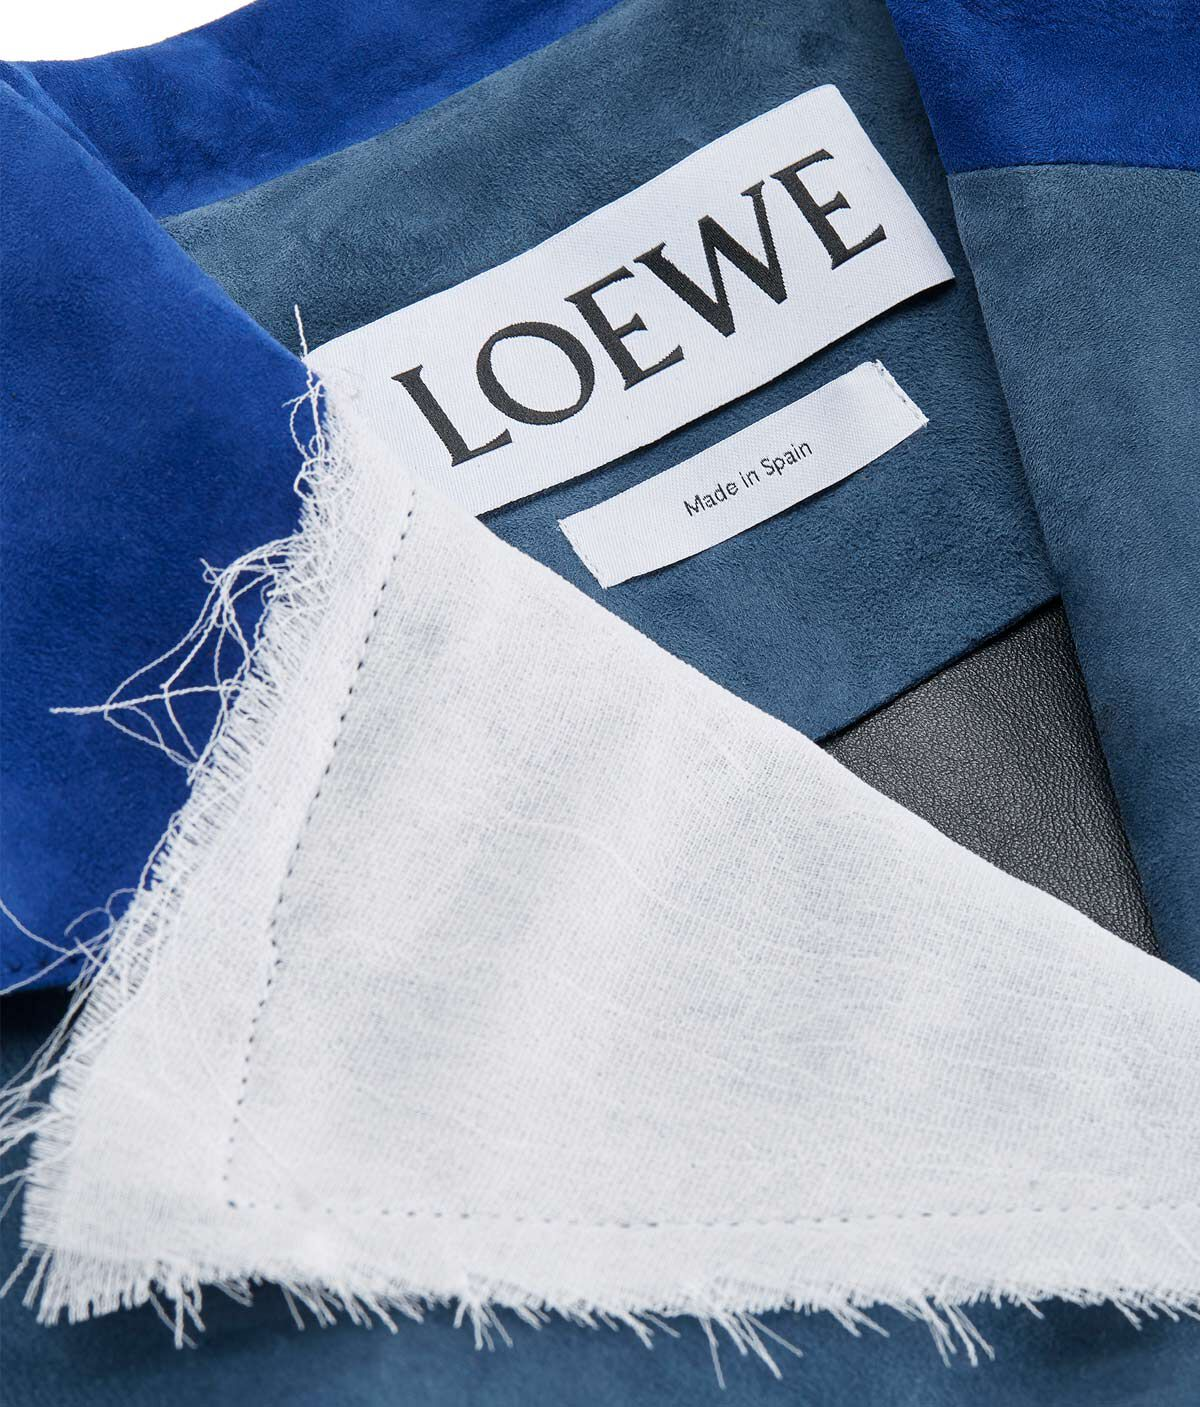 LOEWE Jacket Suede Panels & Textile 蓝色/白色 all